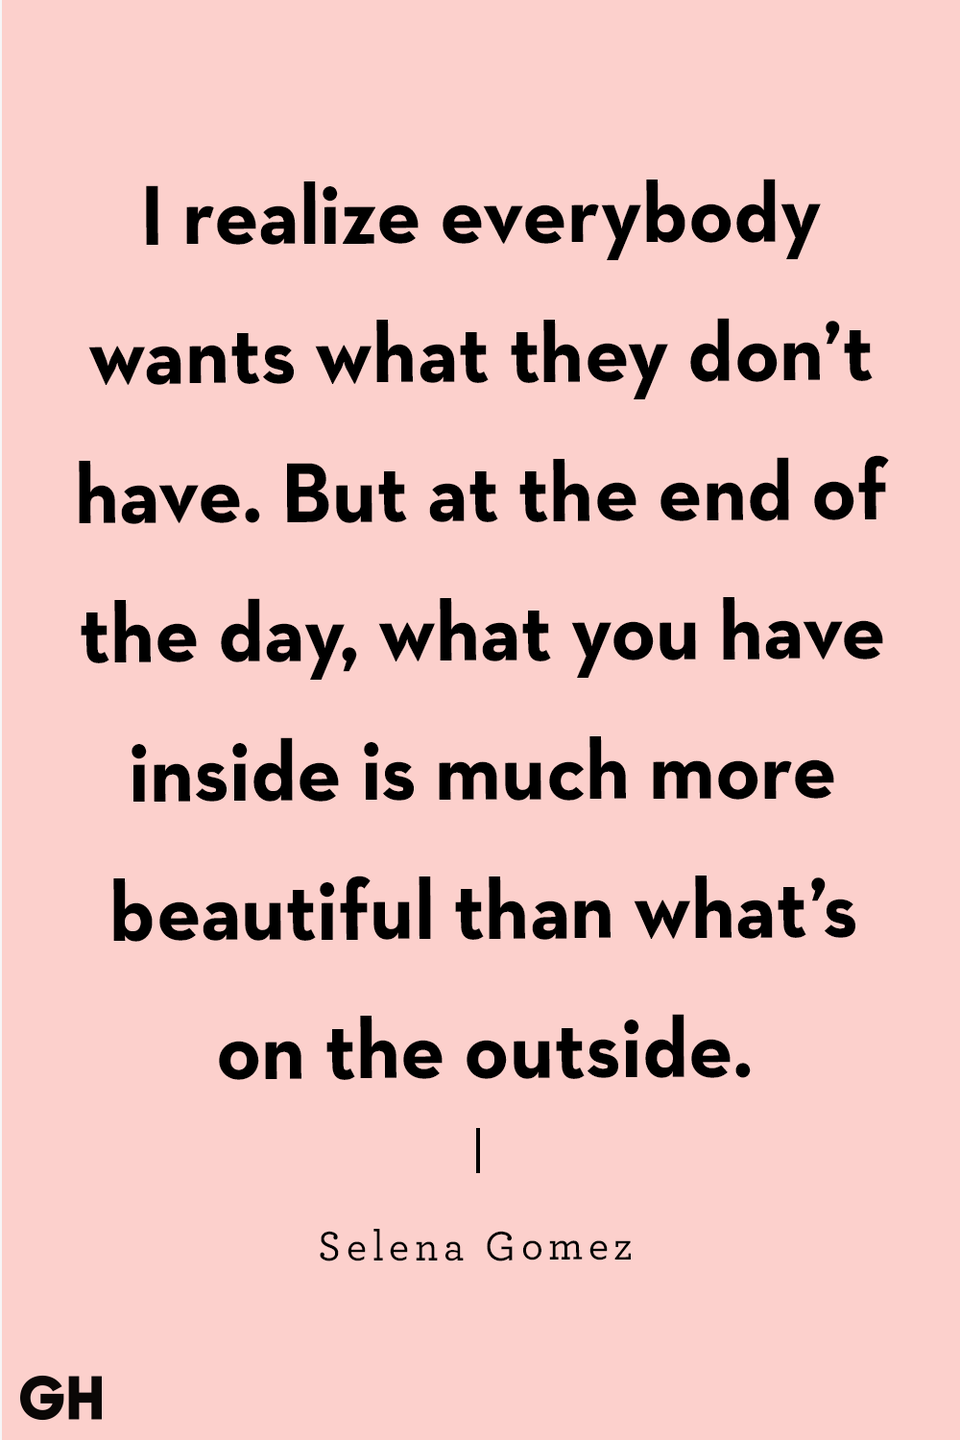 "<p>""I realize everybody wants what they don't have. But at the end of the day, what you have inside is much more beautiful than what's on the outside."" </p>"